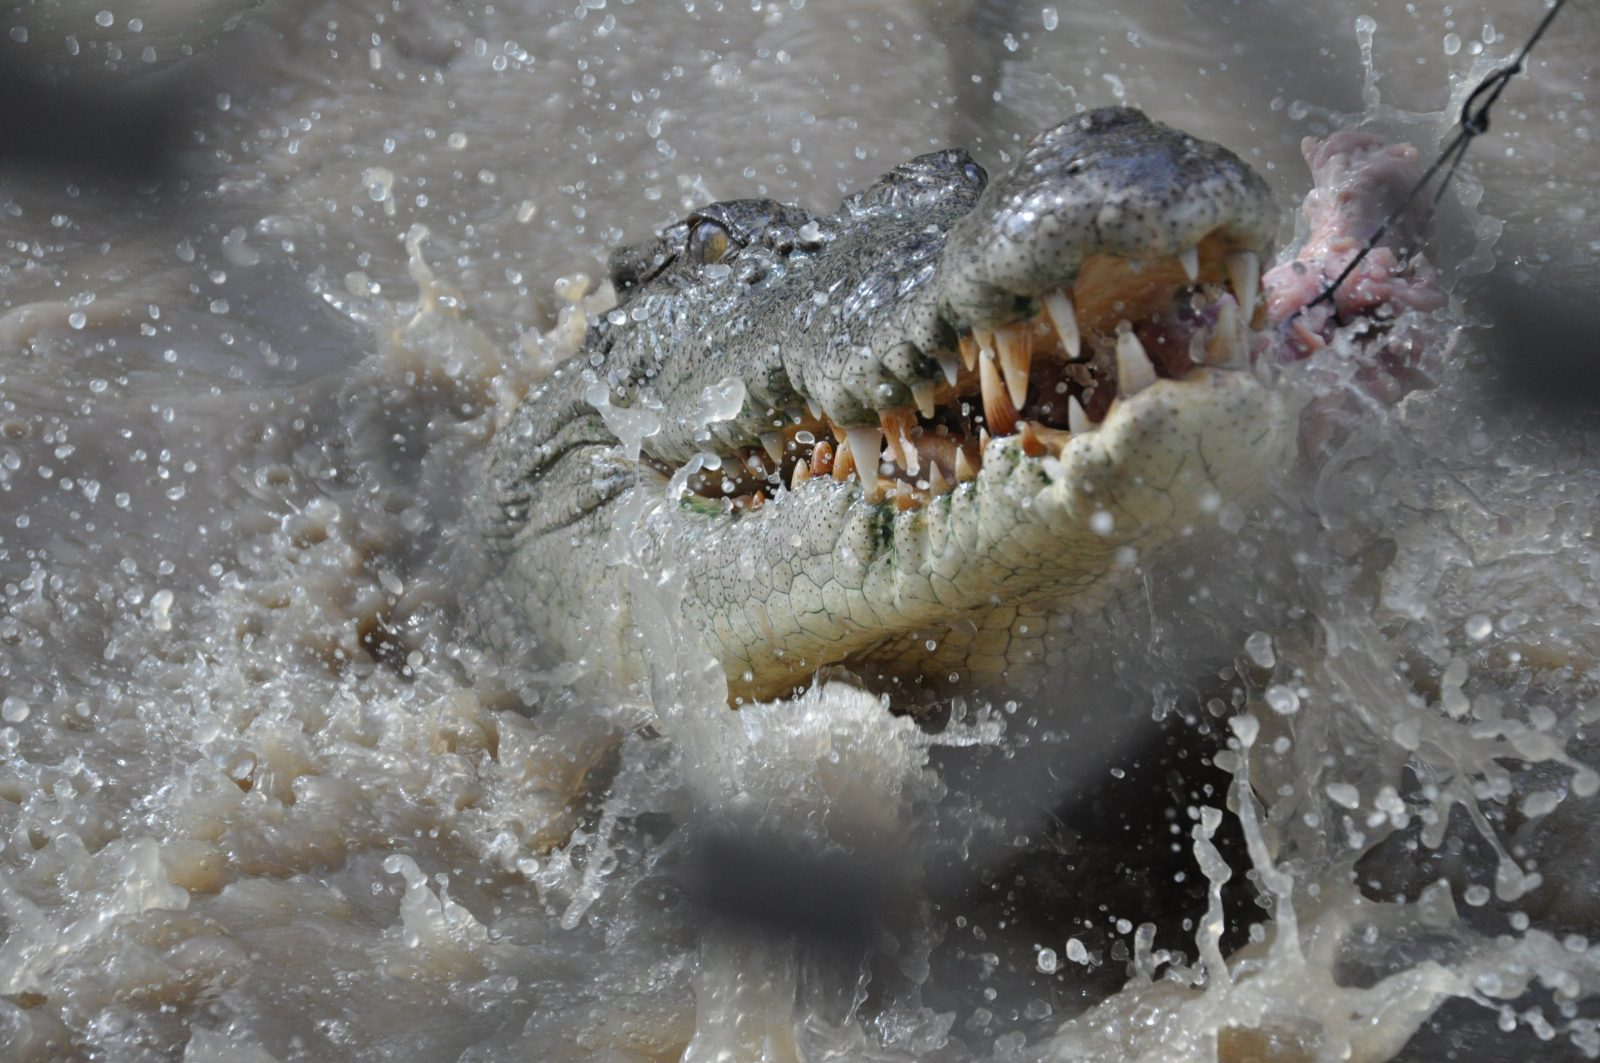 Snap up a great pic on the Jumping Croc Adventure!